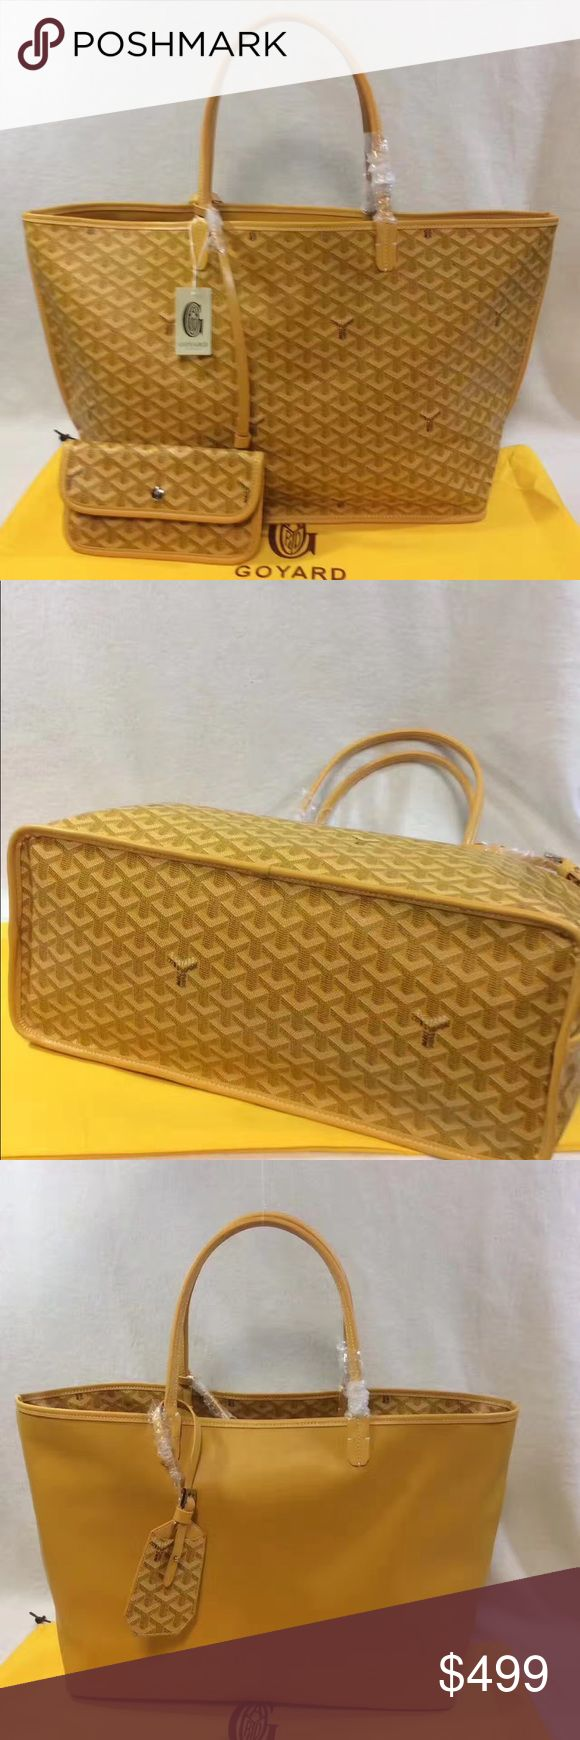 Goyard tote Amazing style, high quality comes with dust bag.Not posting additional pics, need more pics refer to greet pic . Price negotiable Goyard Bags